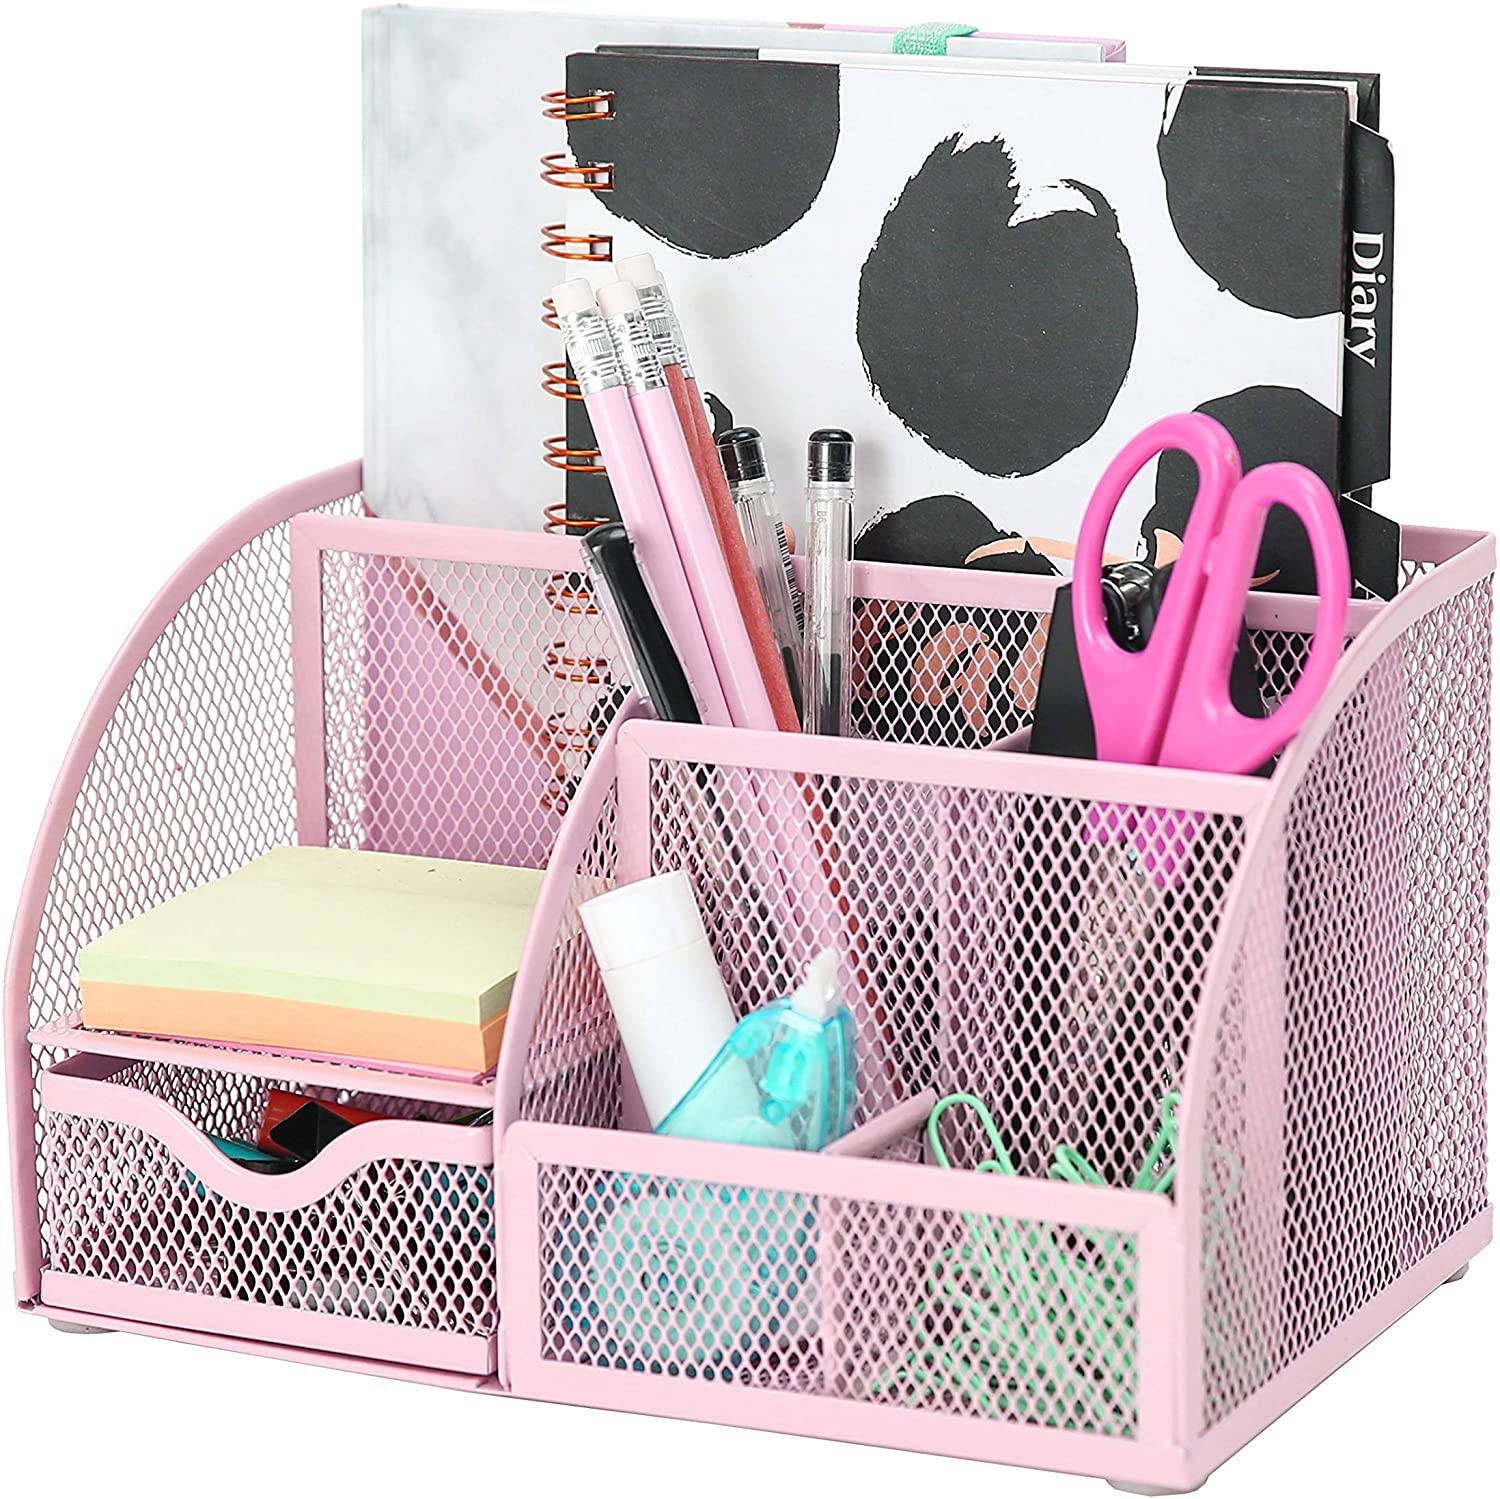 Exerz Mesh Desk Organizer Office with 6 Compartments + Drawer/Desk Tidy Candy/Pen Holder/Multifunctional Organizer (EX348-LPK)